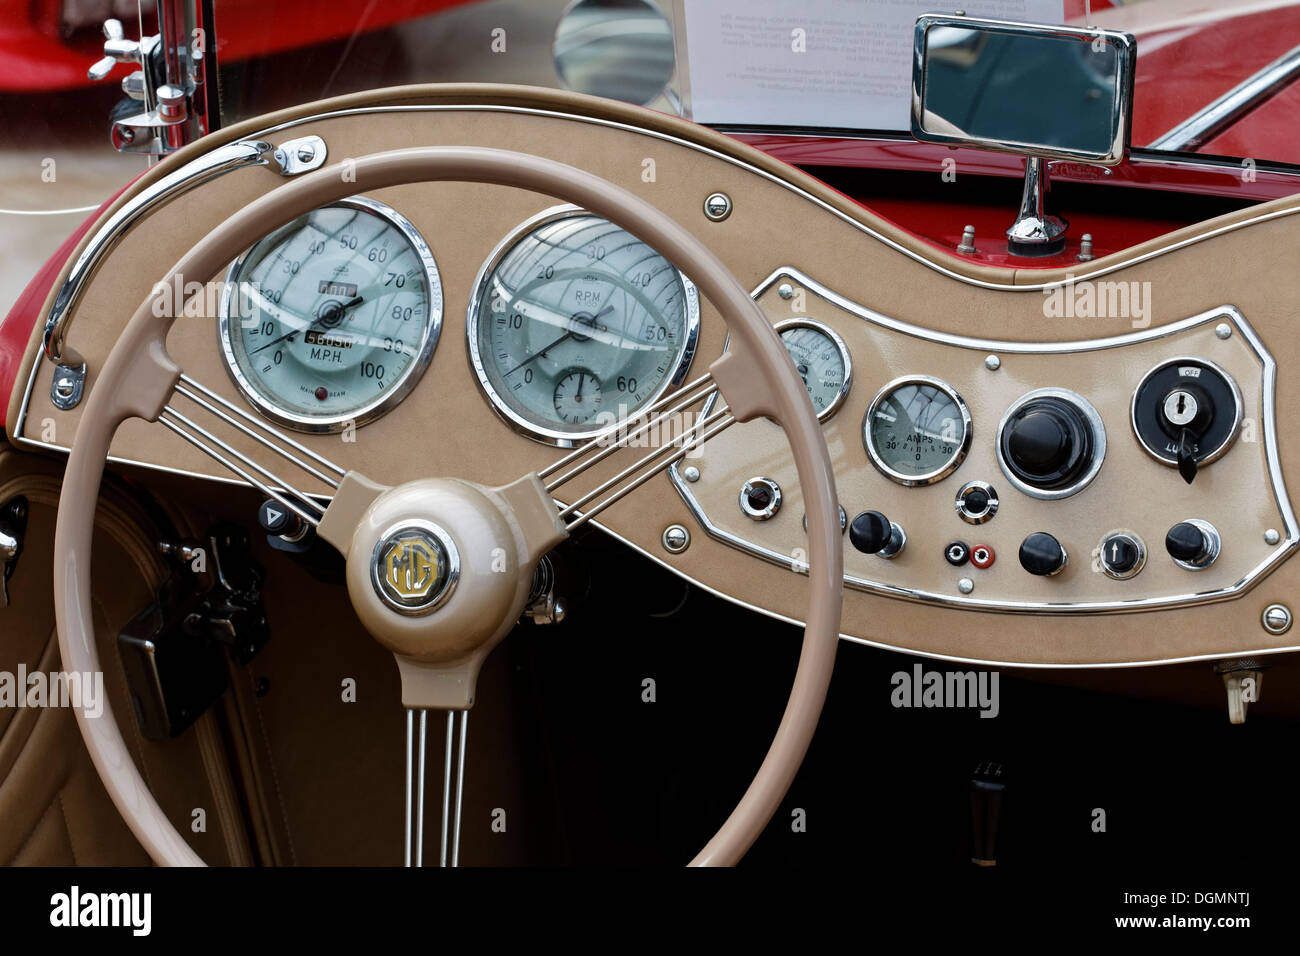 steering wheel and curved dashboard of a mg td mk ii convertible stock photo 61921794 alamy. Black Bedroom Furniture Sets. Home Design Ideas